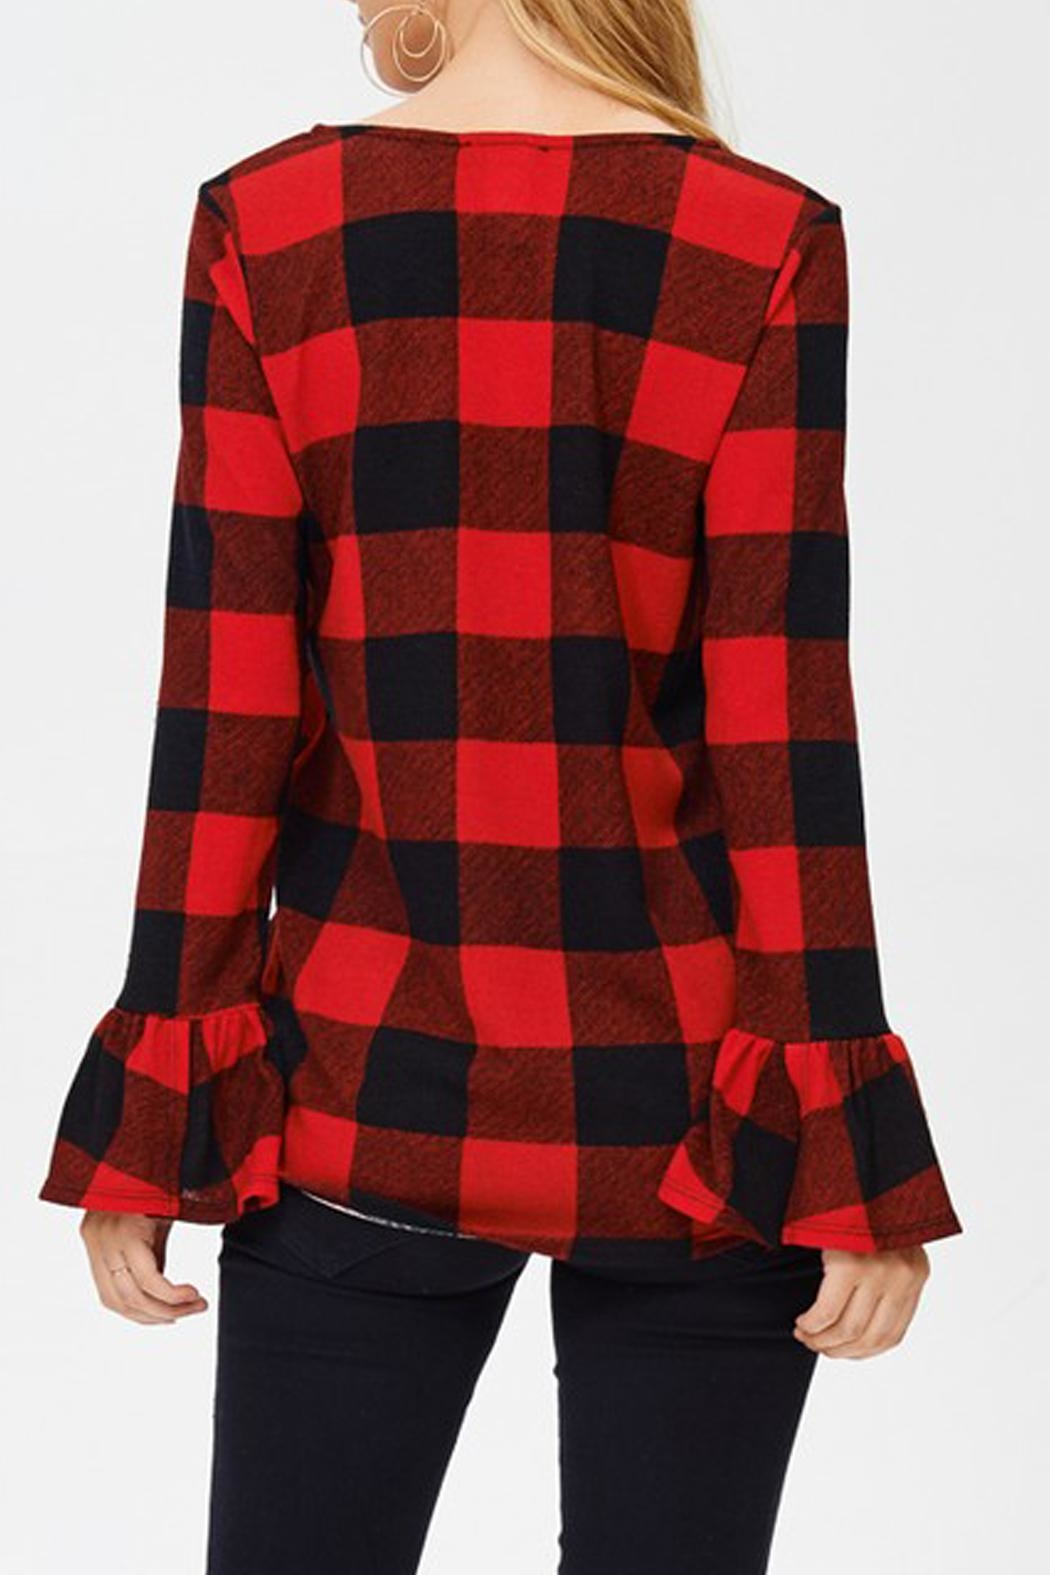 White Birch Buffalo Plaid Top - Front Full Image